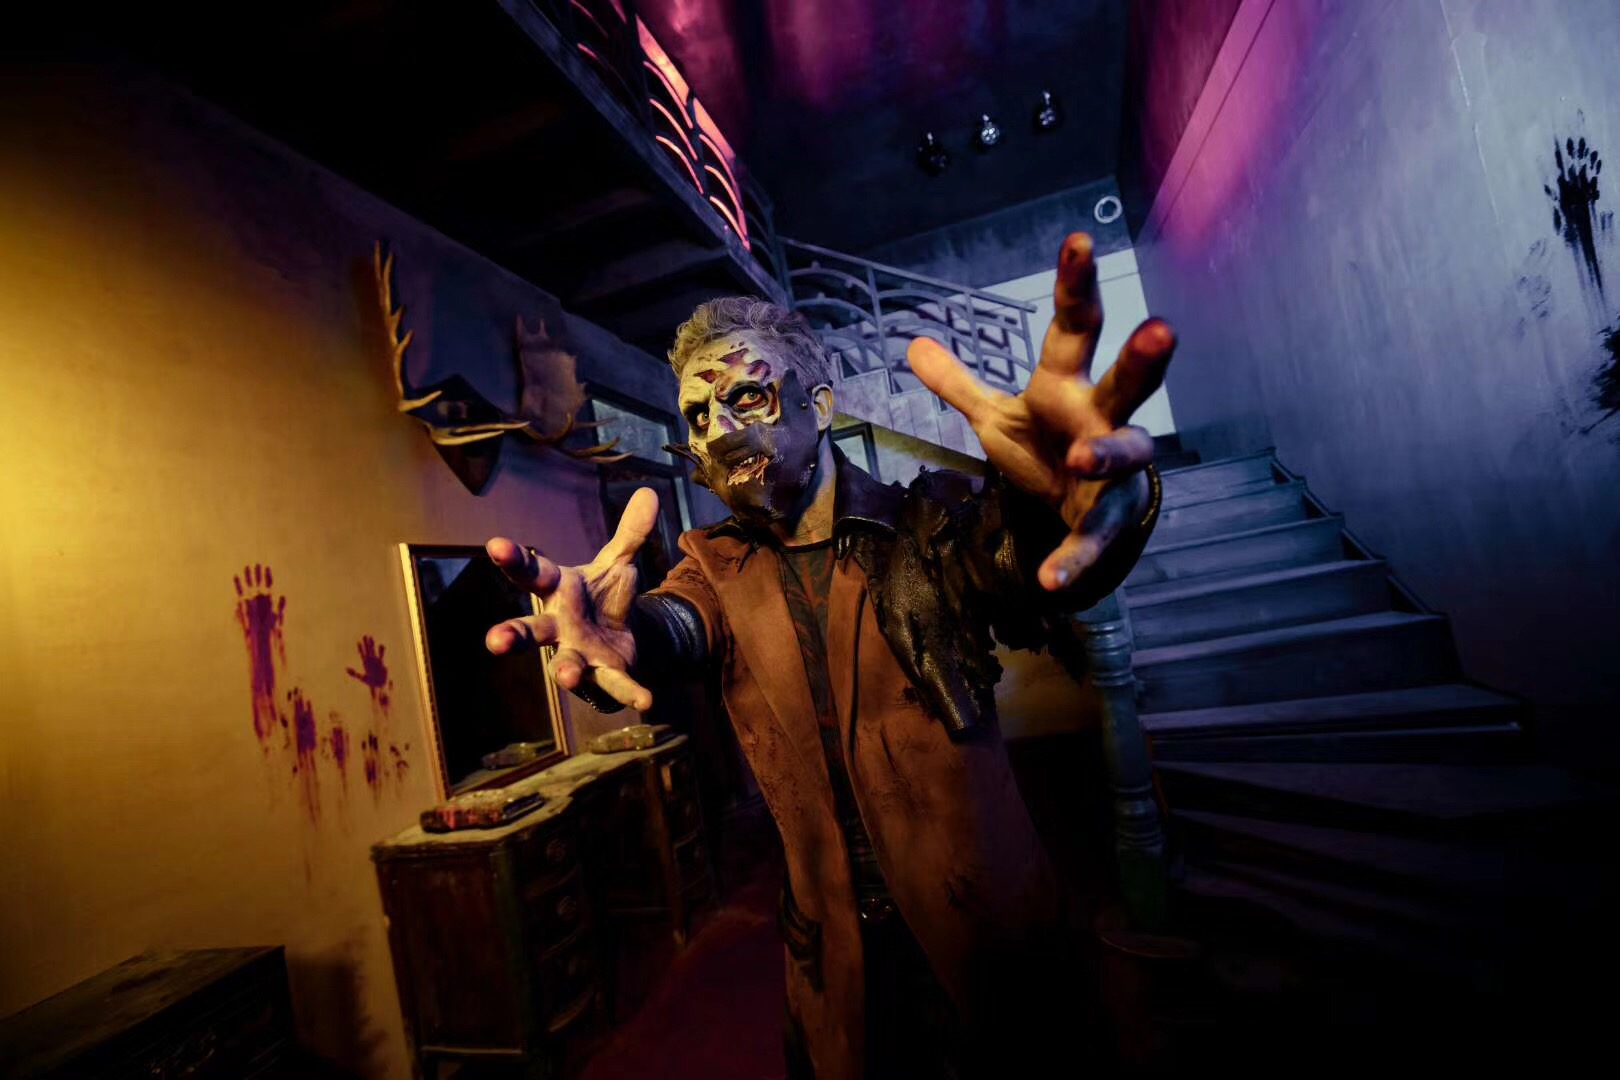 Scare actor at the Cursed House Haunted House at Chimelong in 2019